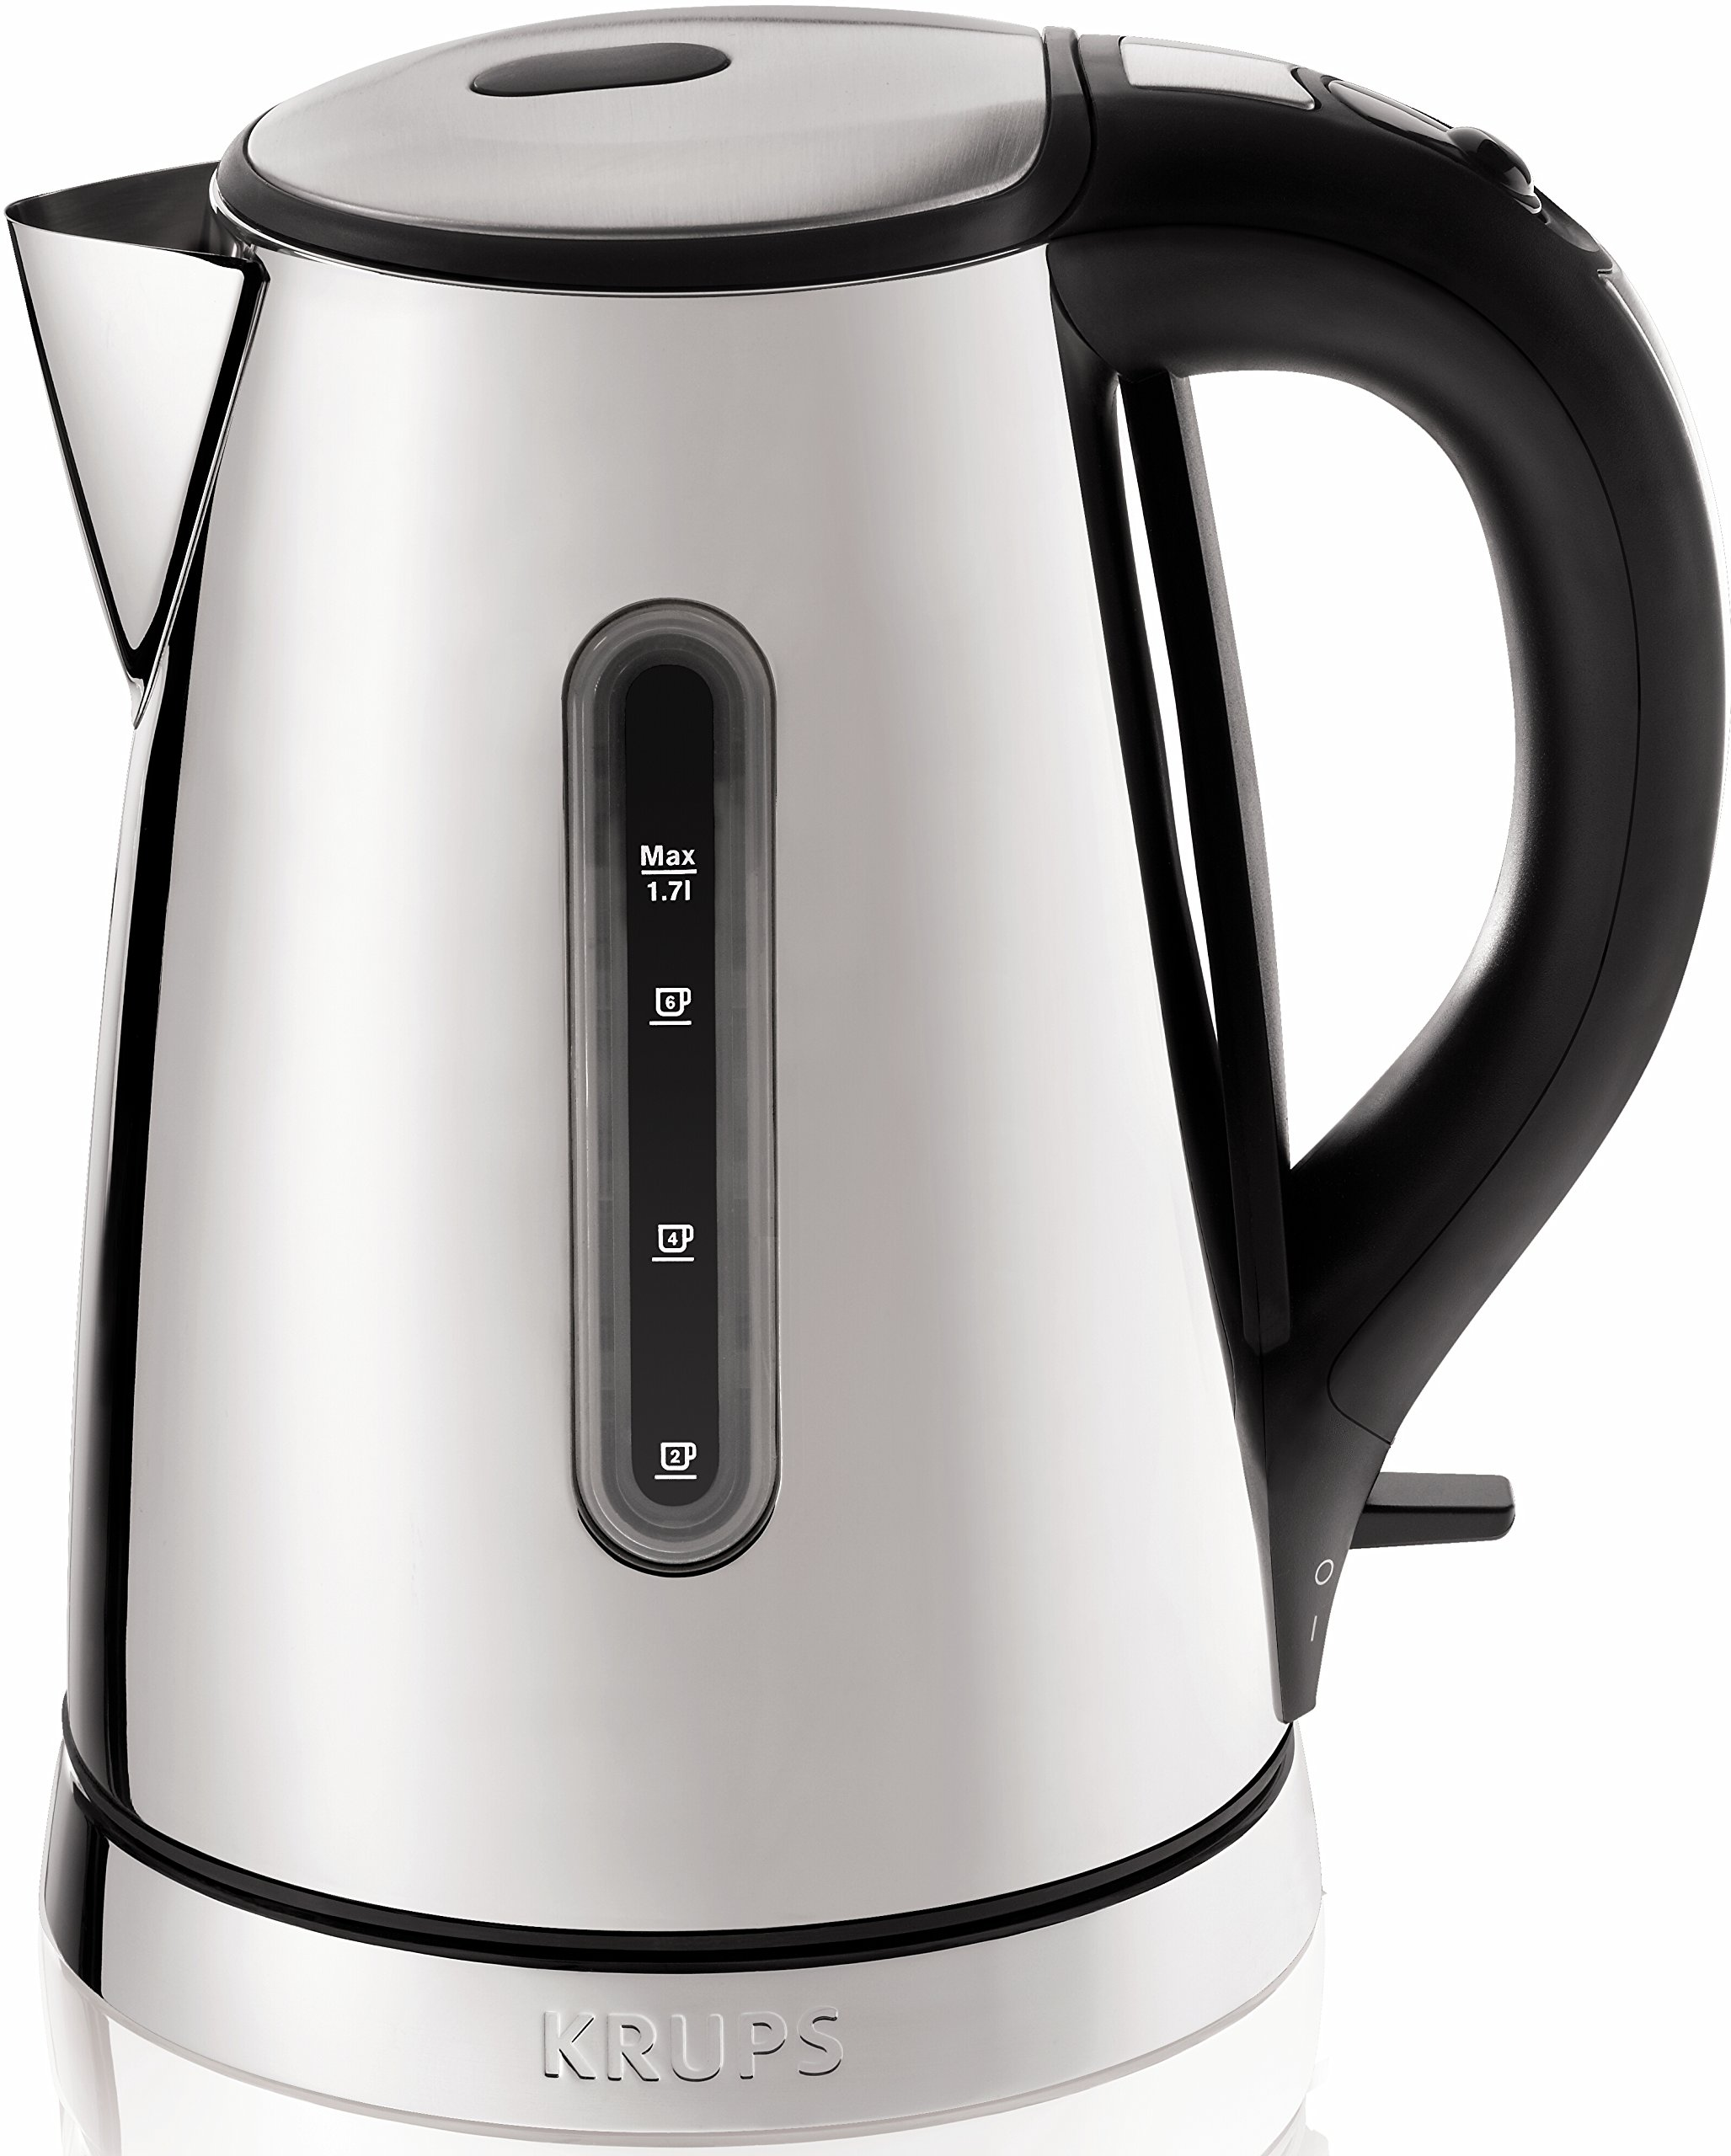 KRUPS BW730D Breakfast Set Electric Kettle with Brushed and Chrome Stainless Steel Housing, 1.7-Liter, Silver